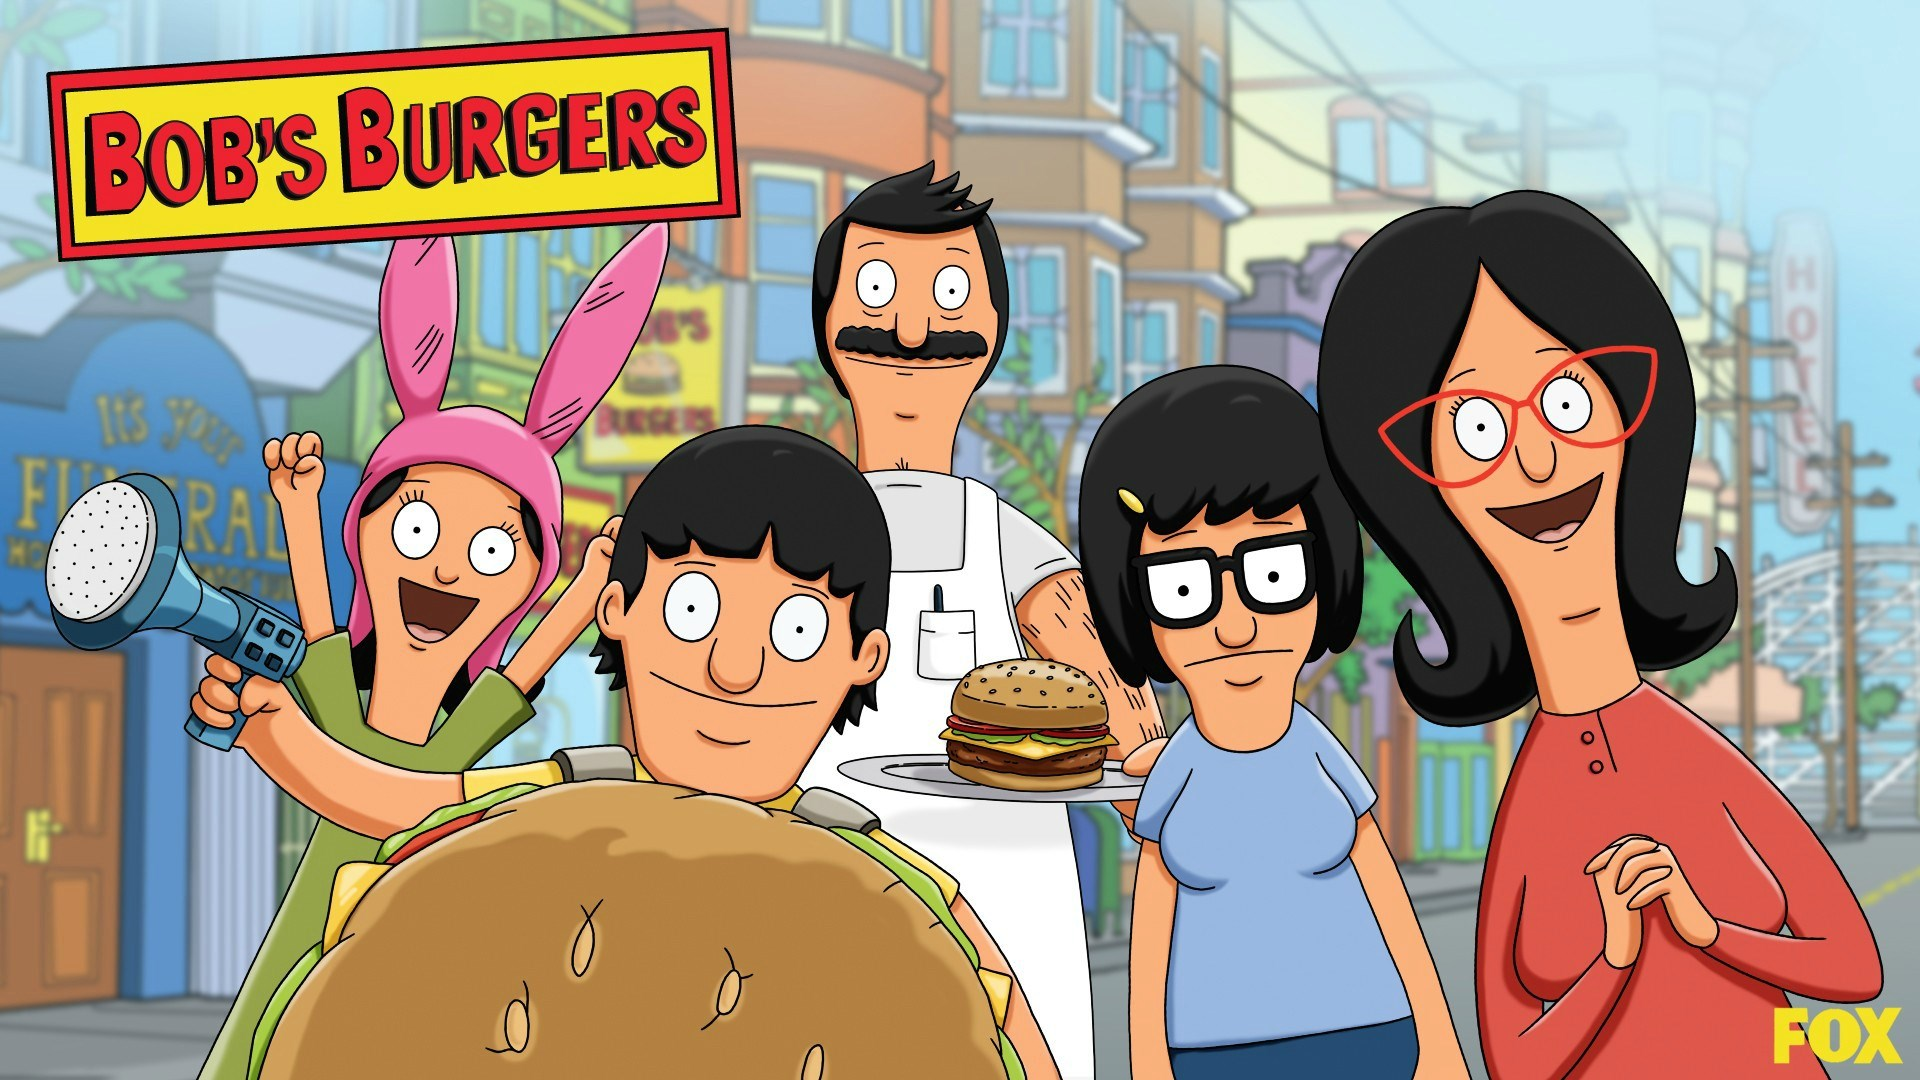 Al-Young-bobs-burgers-desktop-nexus-1920x1080-px-wallpaper-wpc5802006